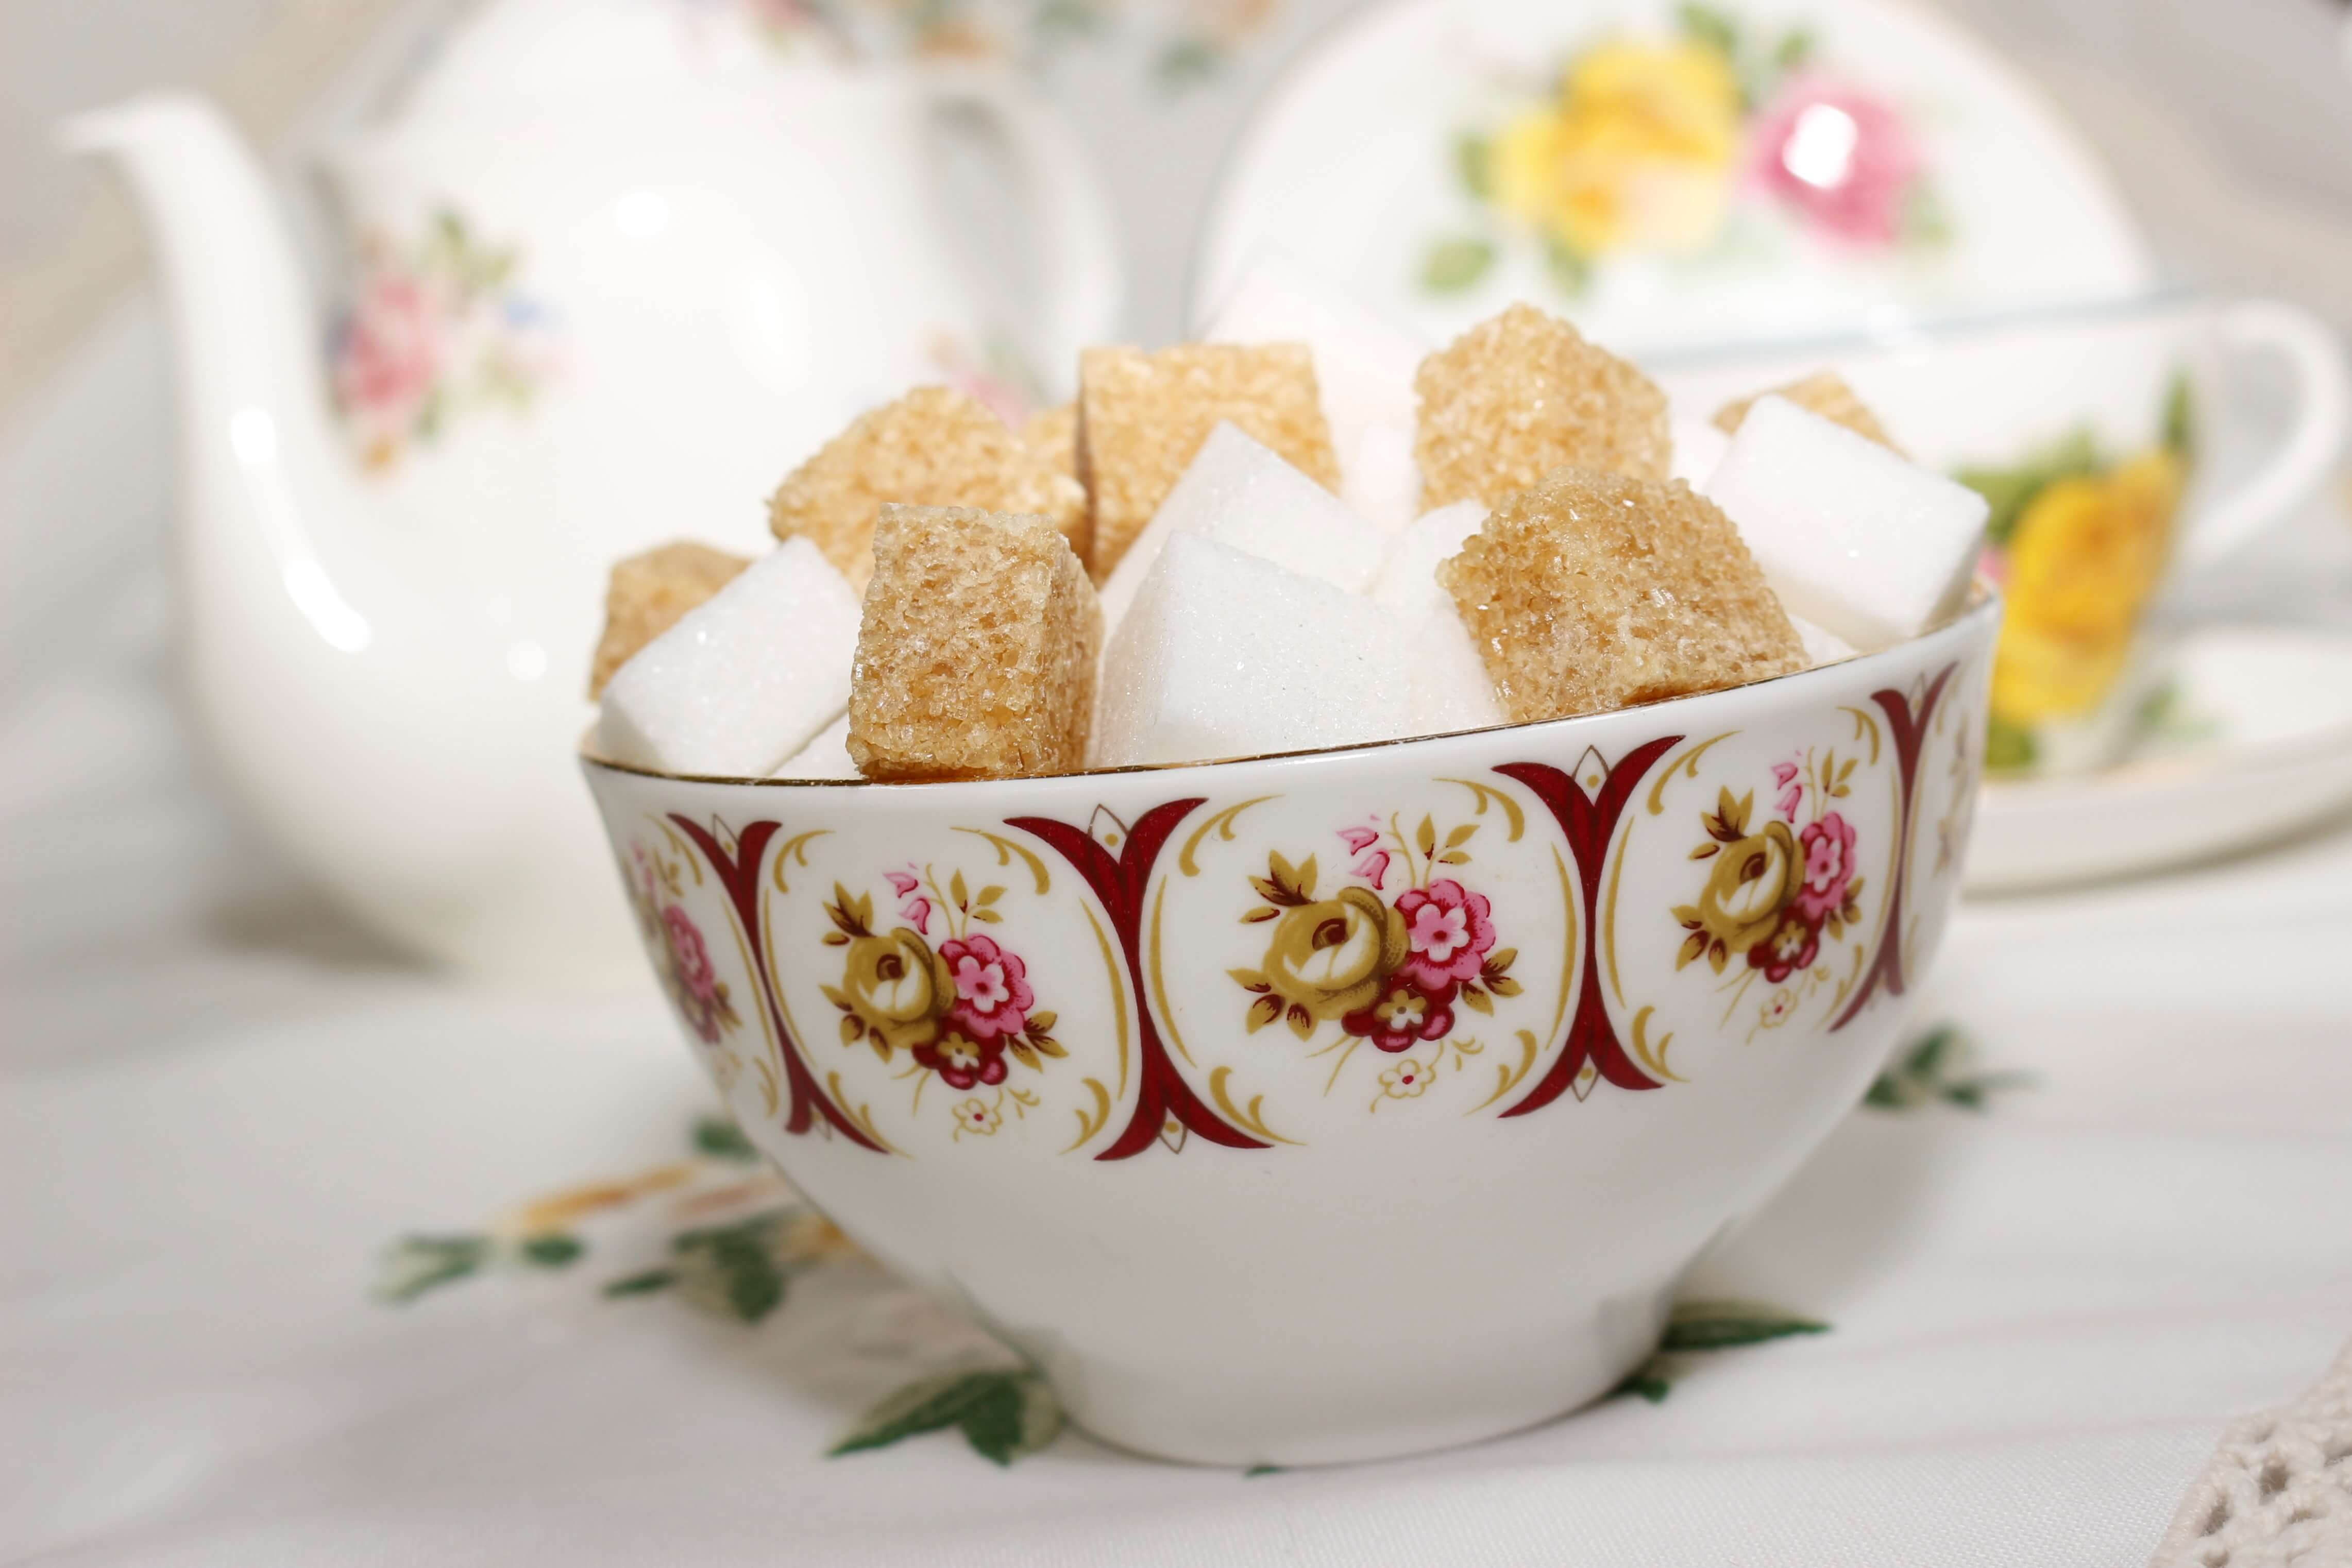 A Vintage Sugar Bowl filled with Sugar Cubes